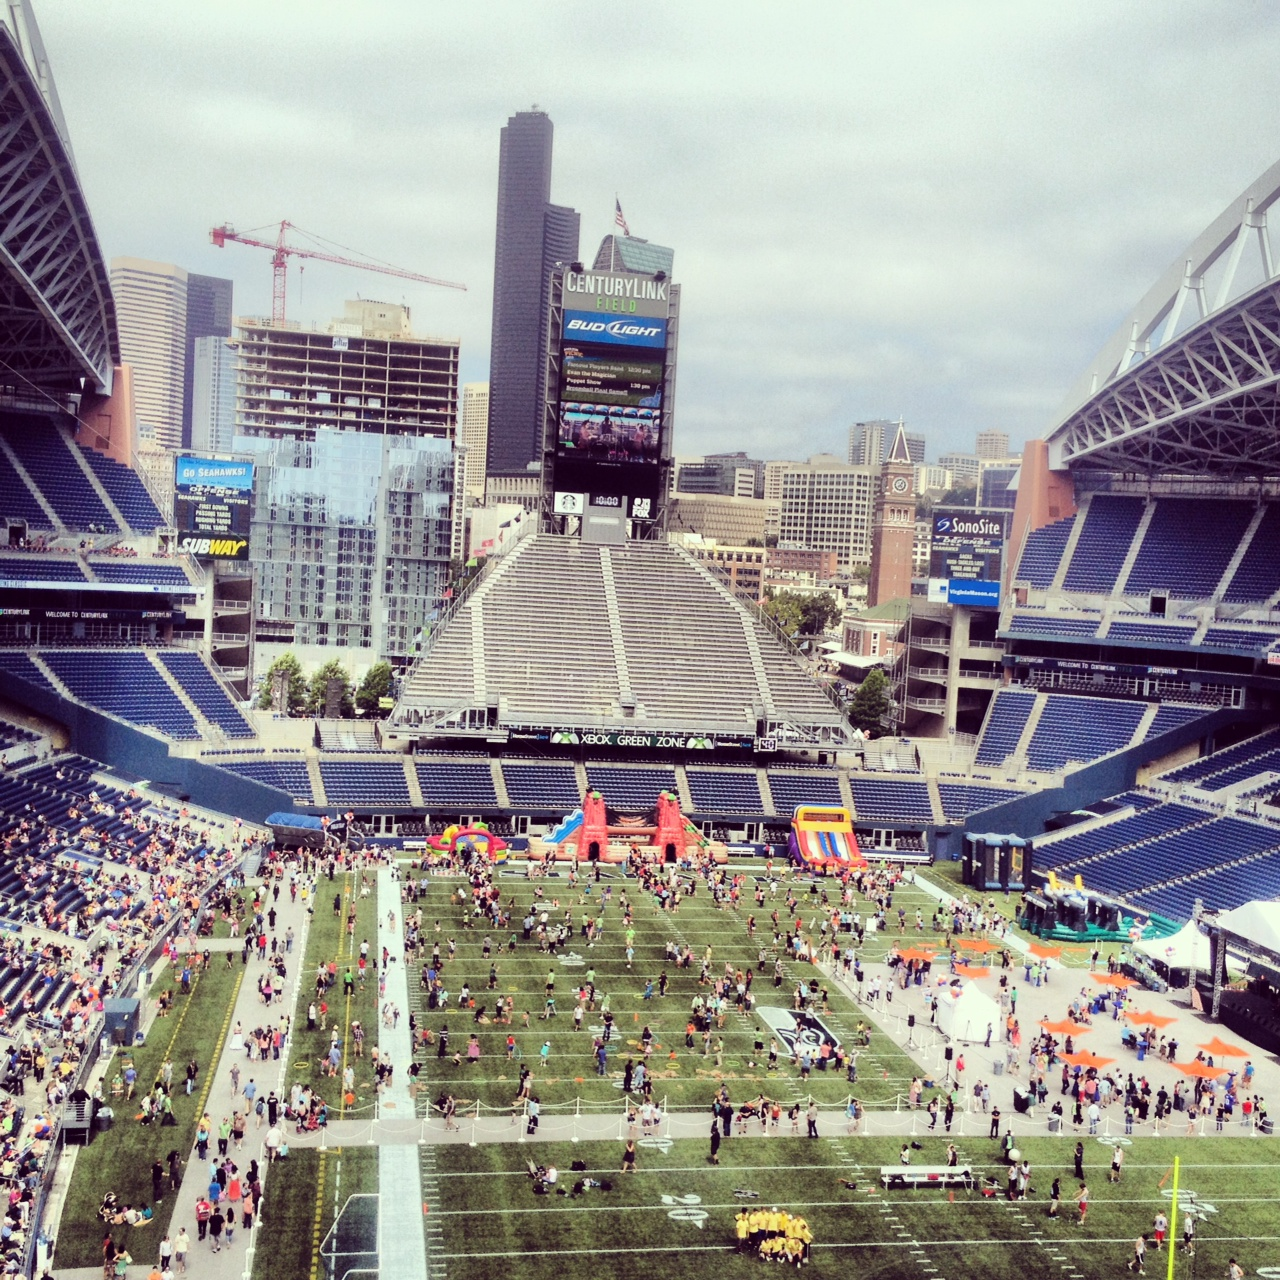 High level view of Century Link field in Seattle, WA.